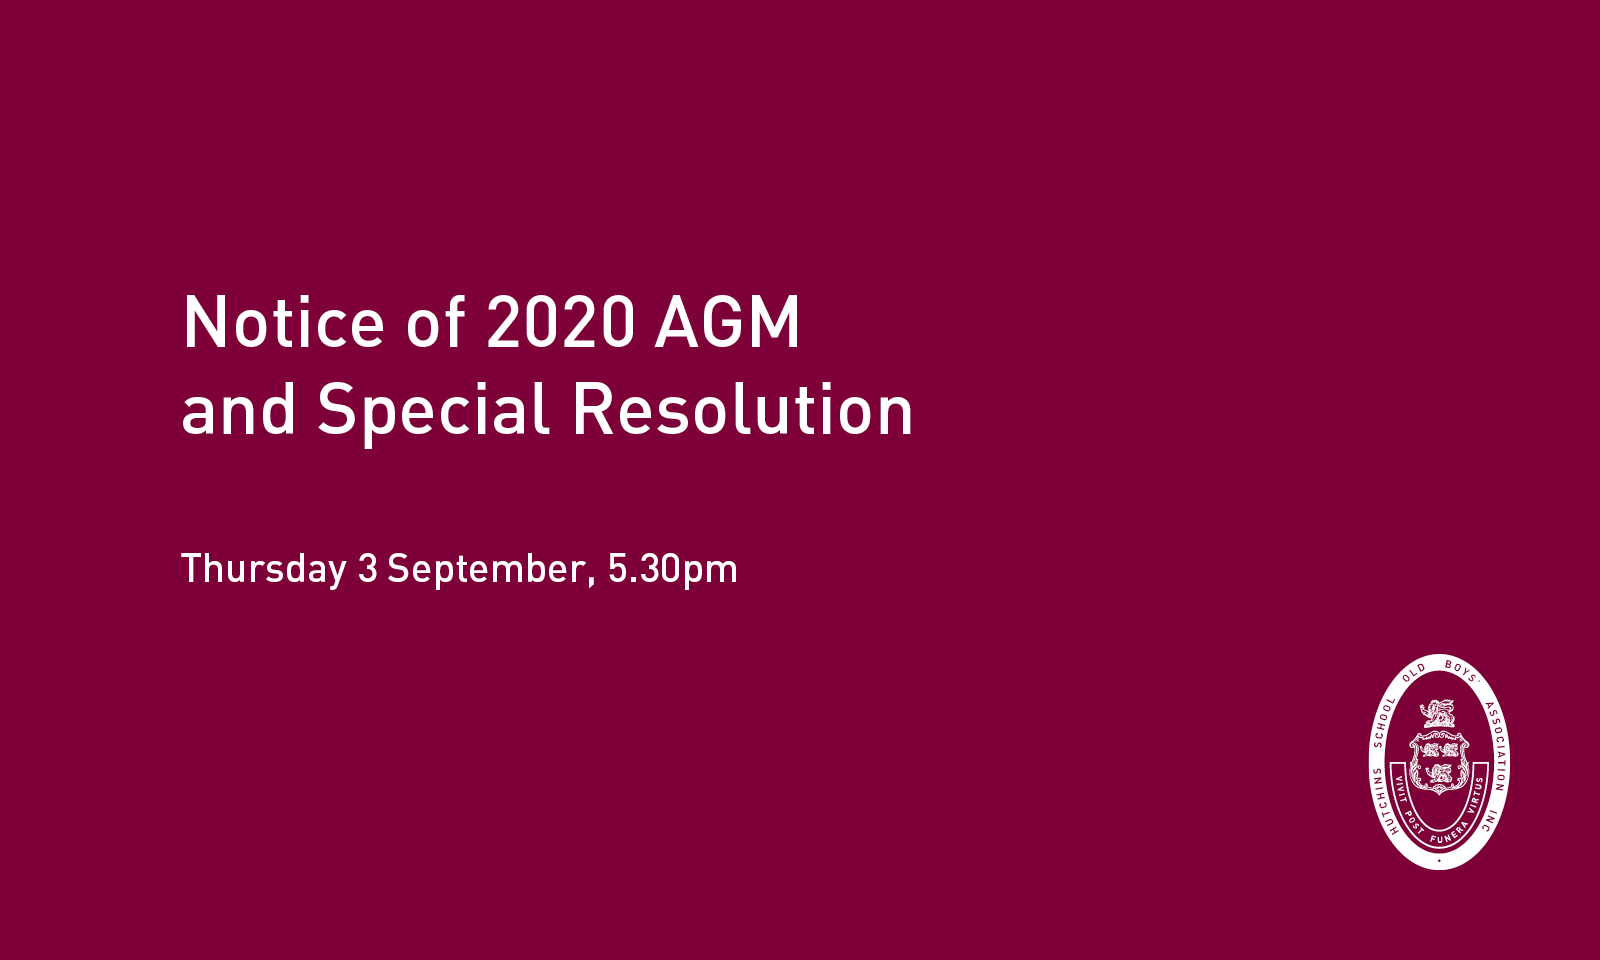 HSOBA Noitce of AGM and Special Resolution, 5.30pm, Thursday 3 September 2020